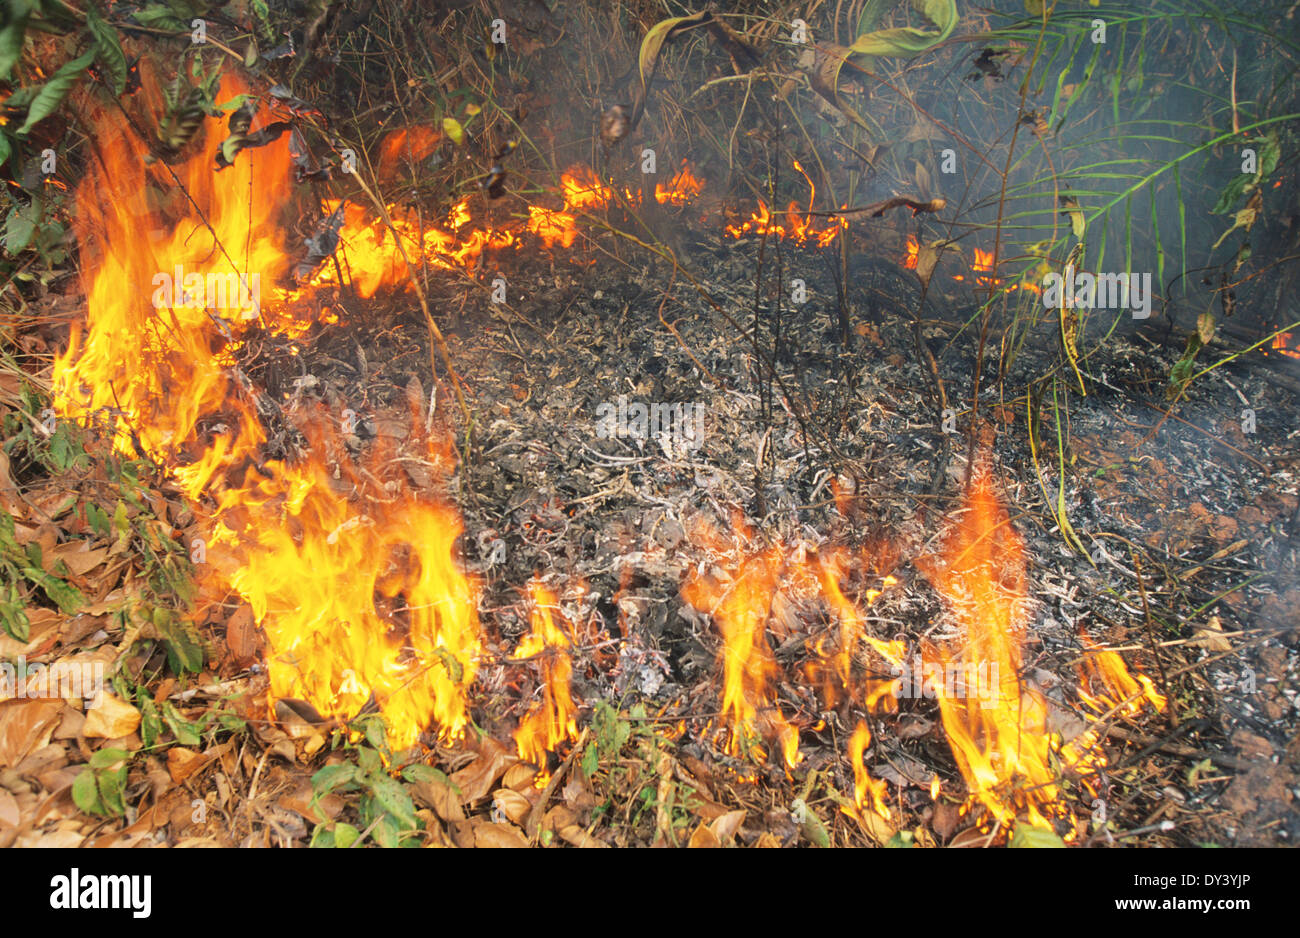 Forest Fires During The Dry Season Amazon Rainforest Brazil